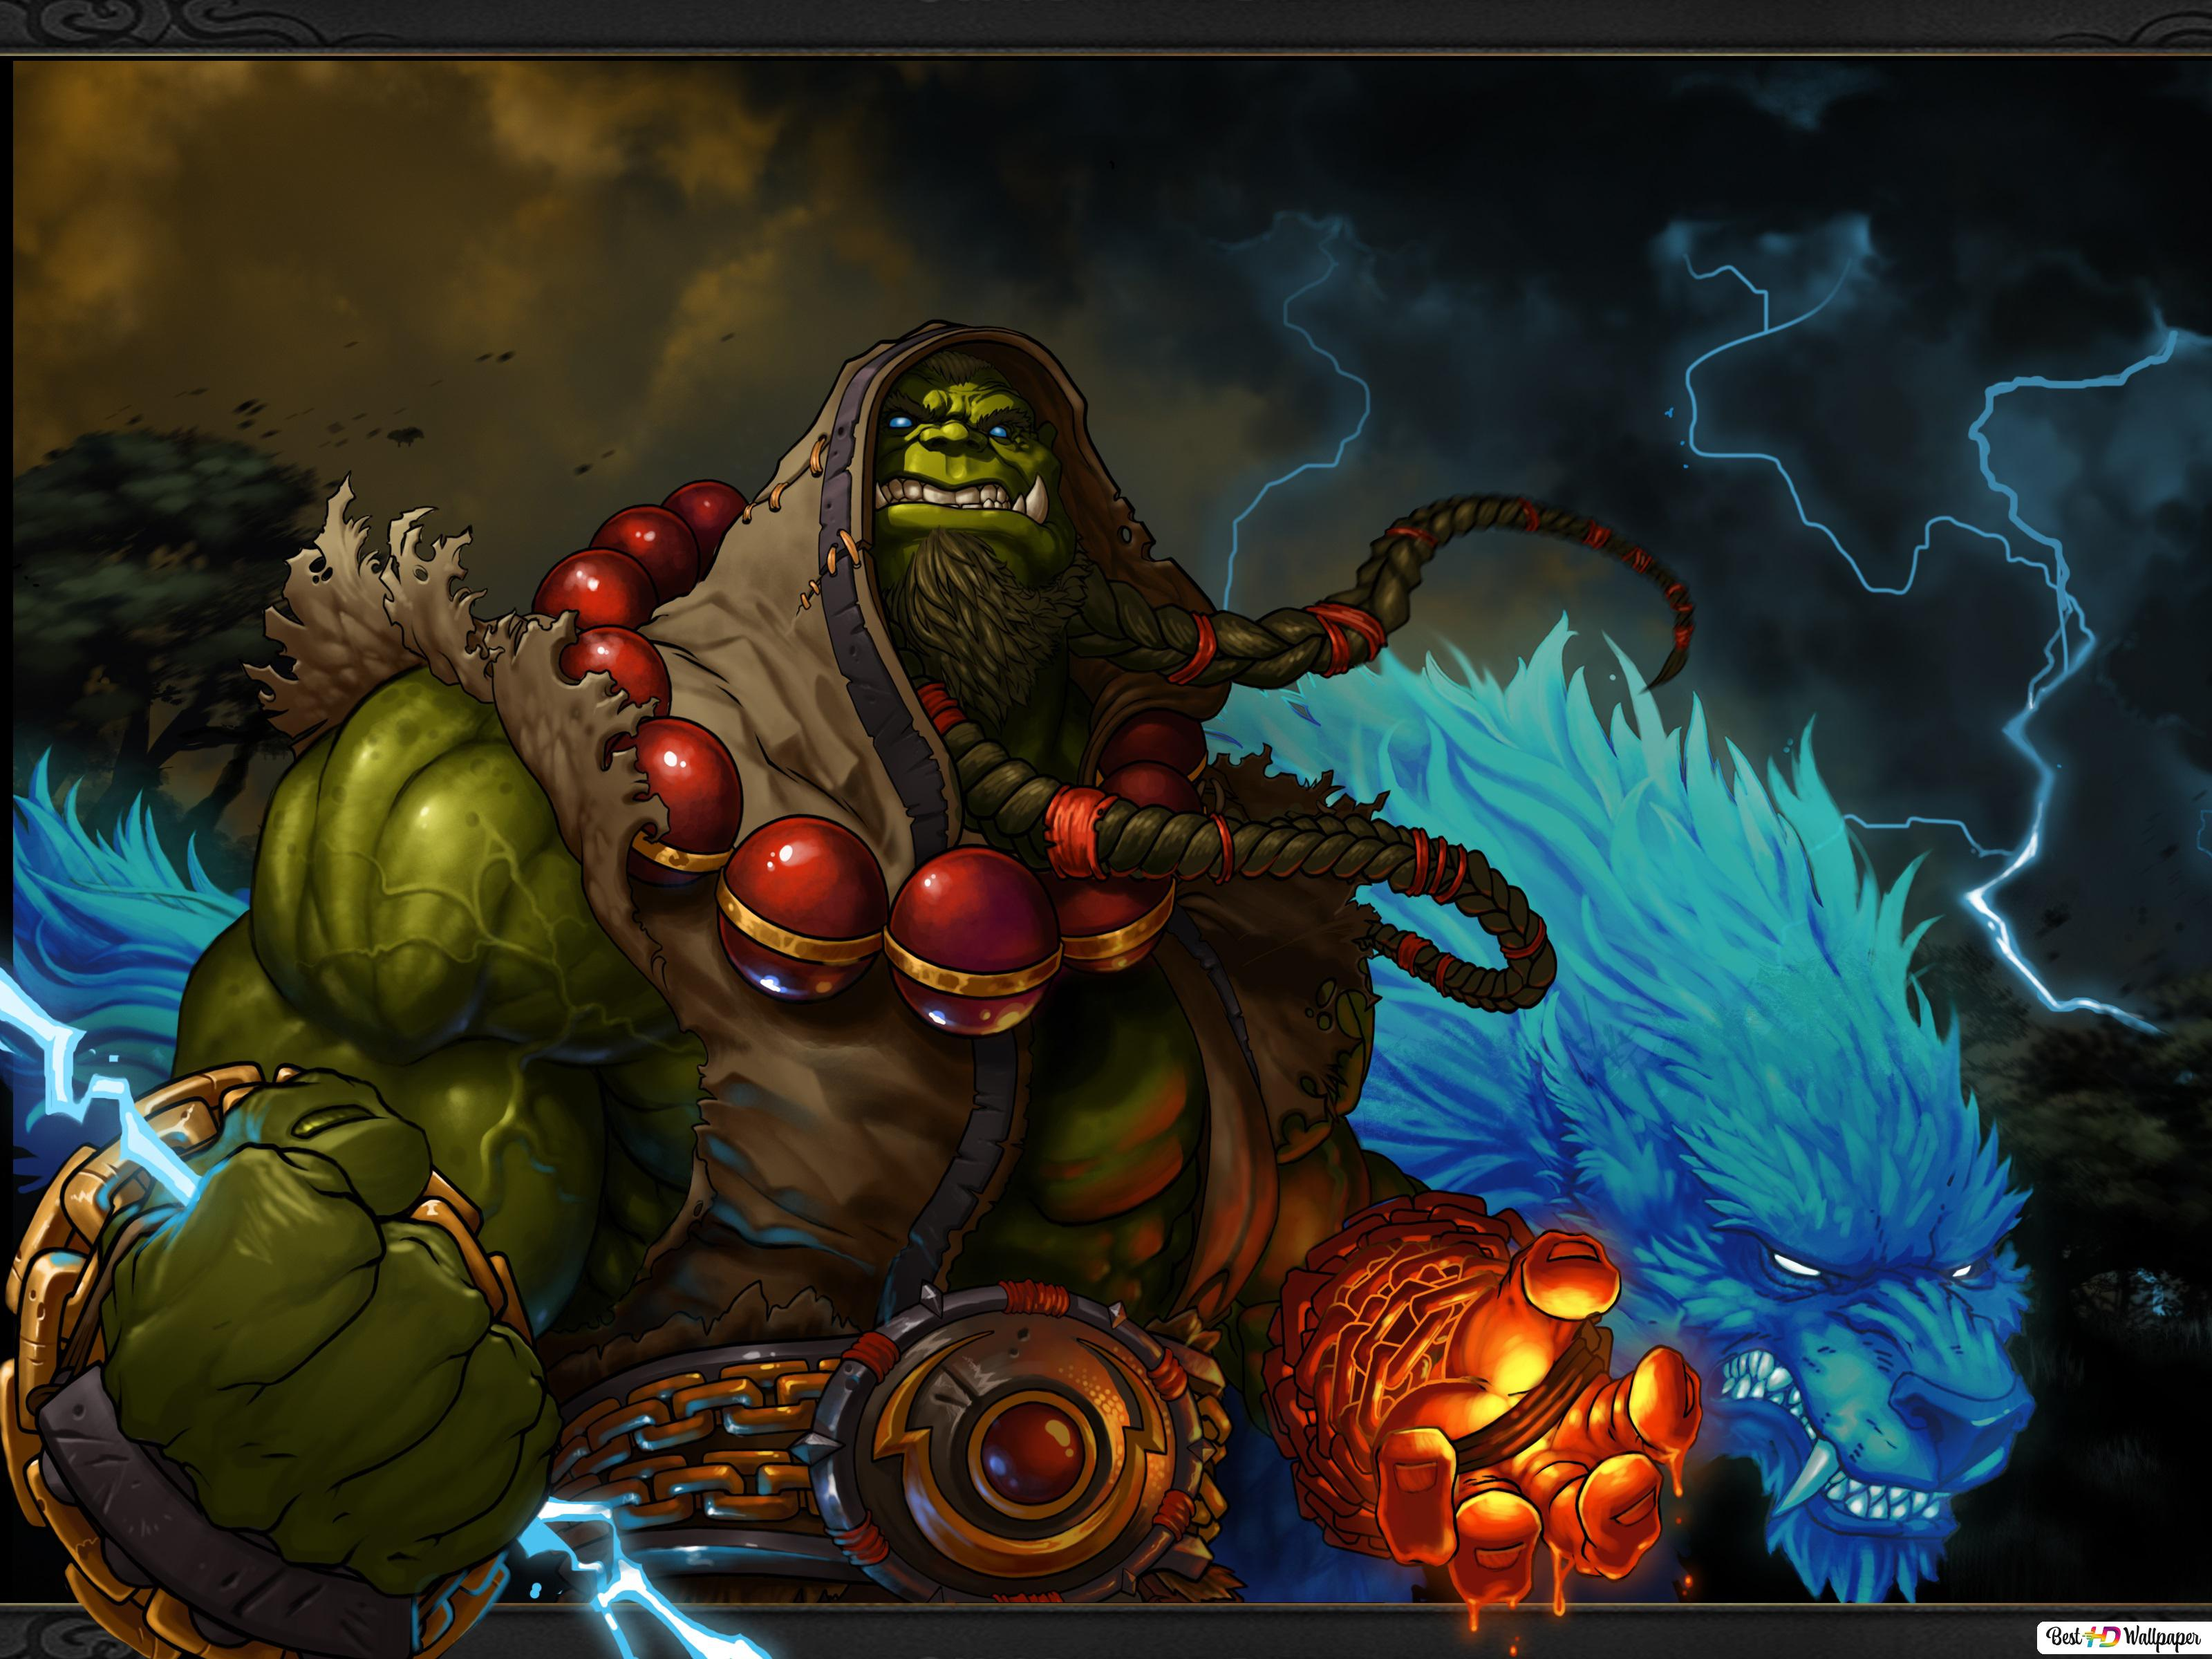 Descargar Fondo De Pantalla World Of Warcraft Chaman Orco Hd